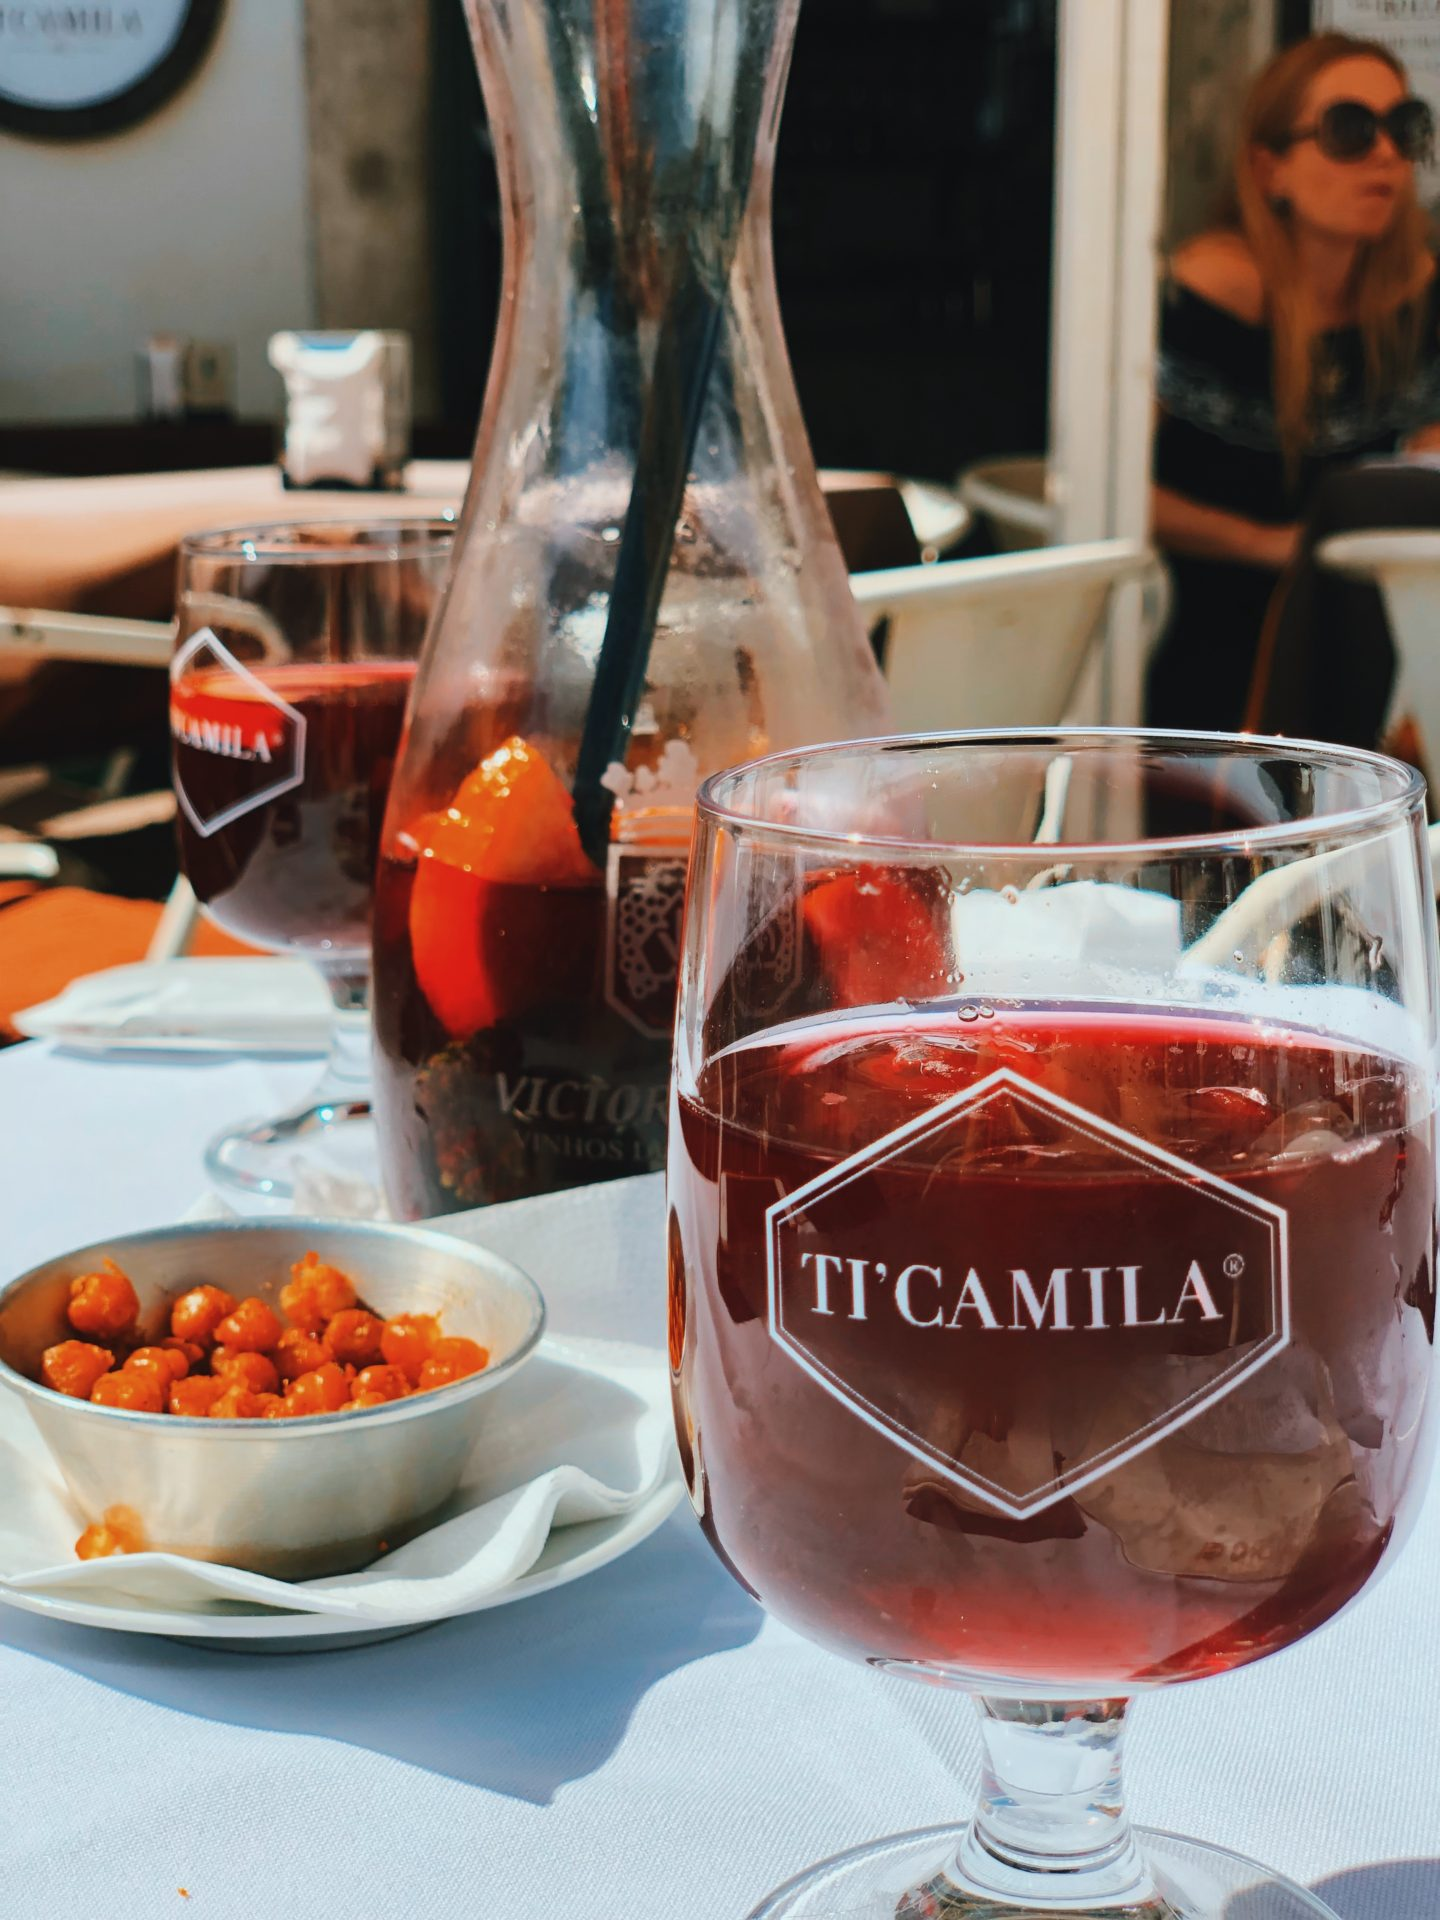 Sangria and baked chickapeas after a hectic and stressful travel day on the side streets of Lisbon Portugal